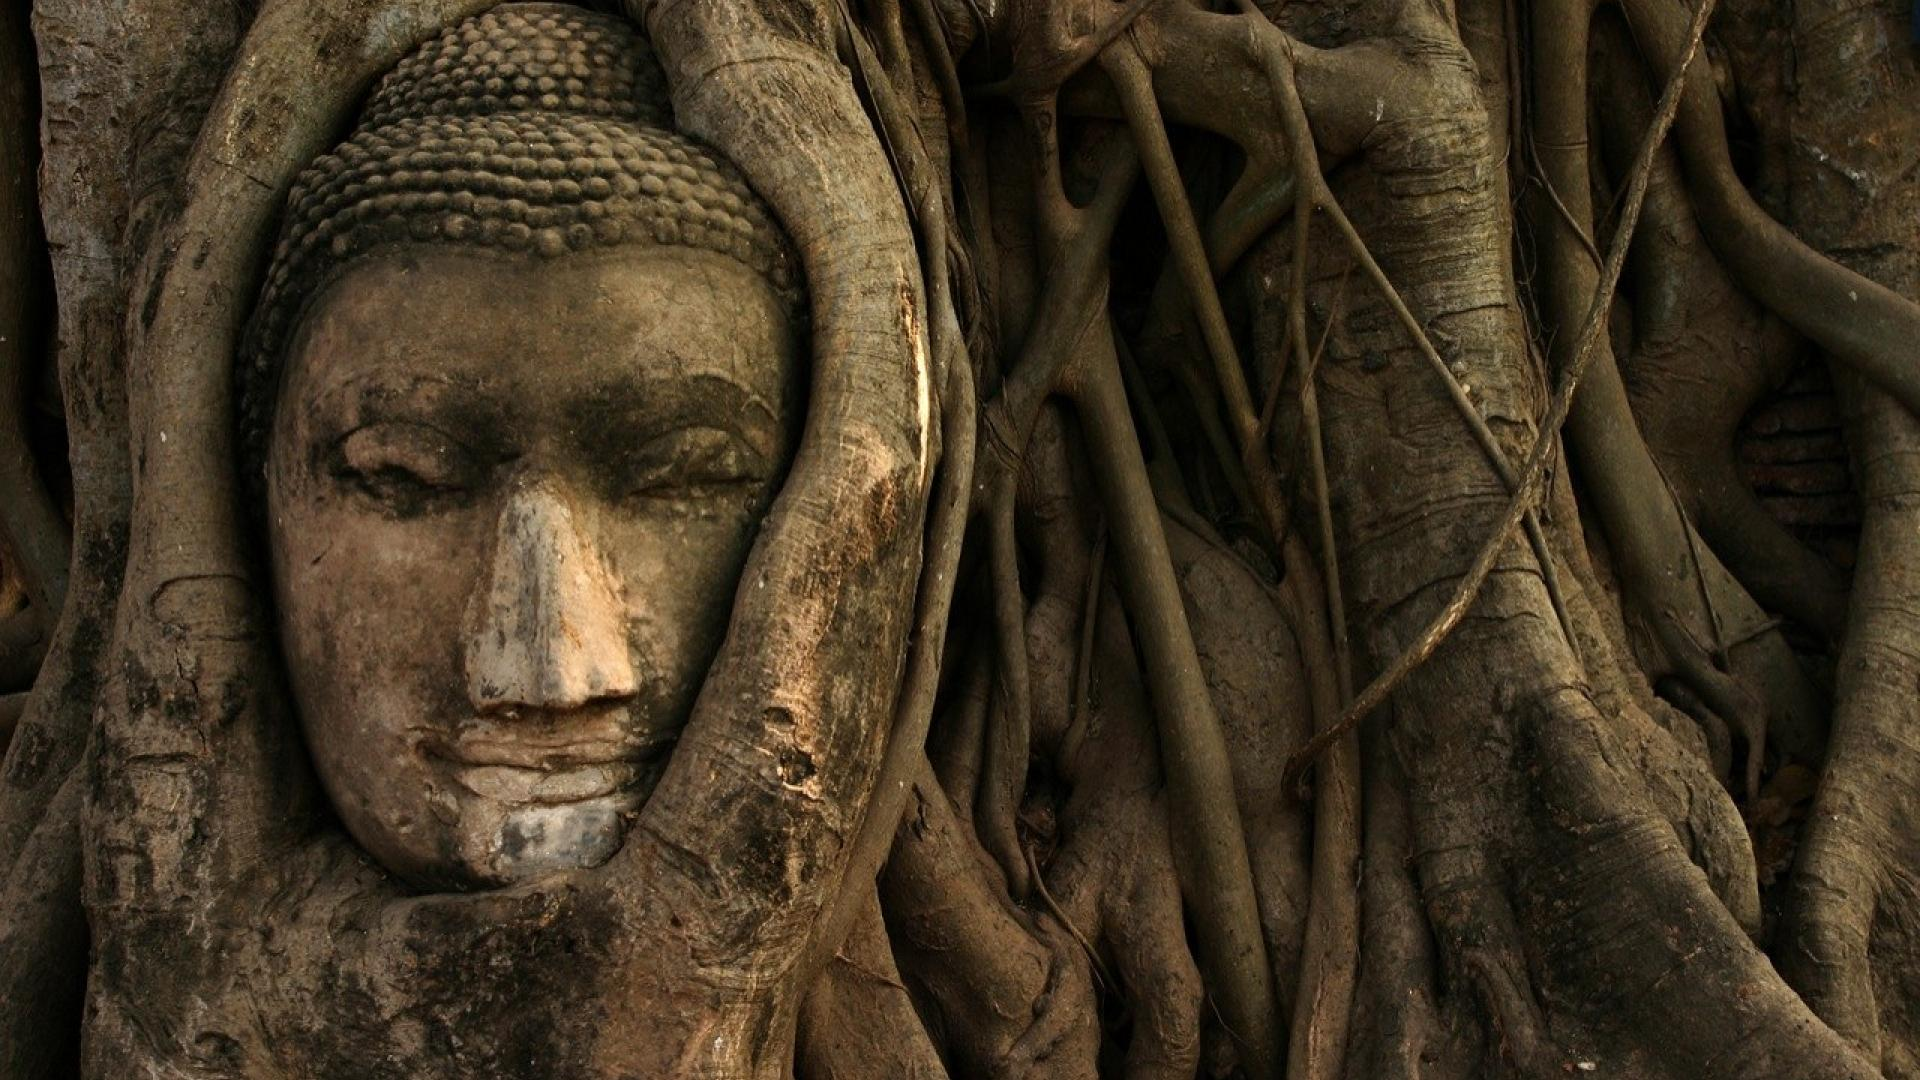 Download Lord Buddha Images Gautam Buddha Images Lord Buddha Photos Pics And Hd Wallpapers